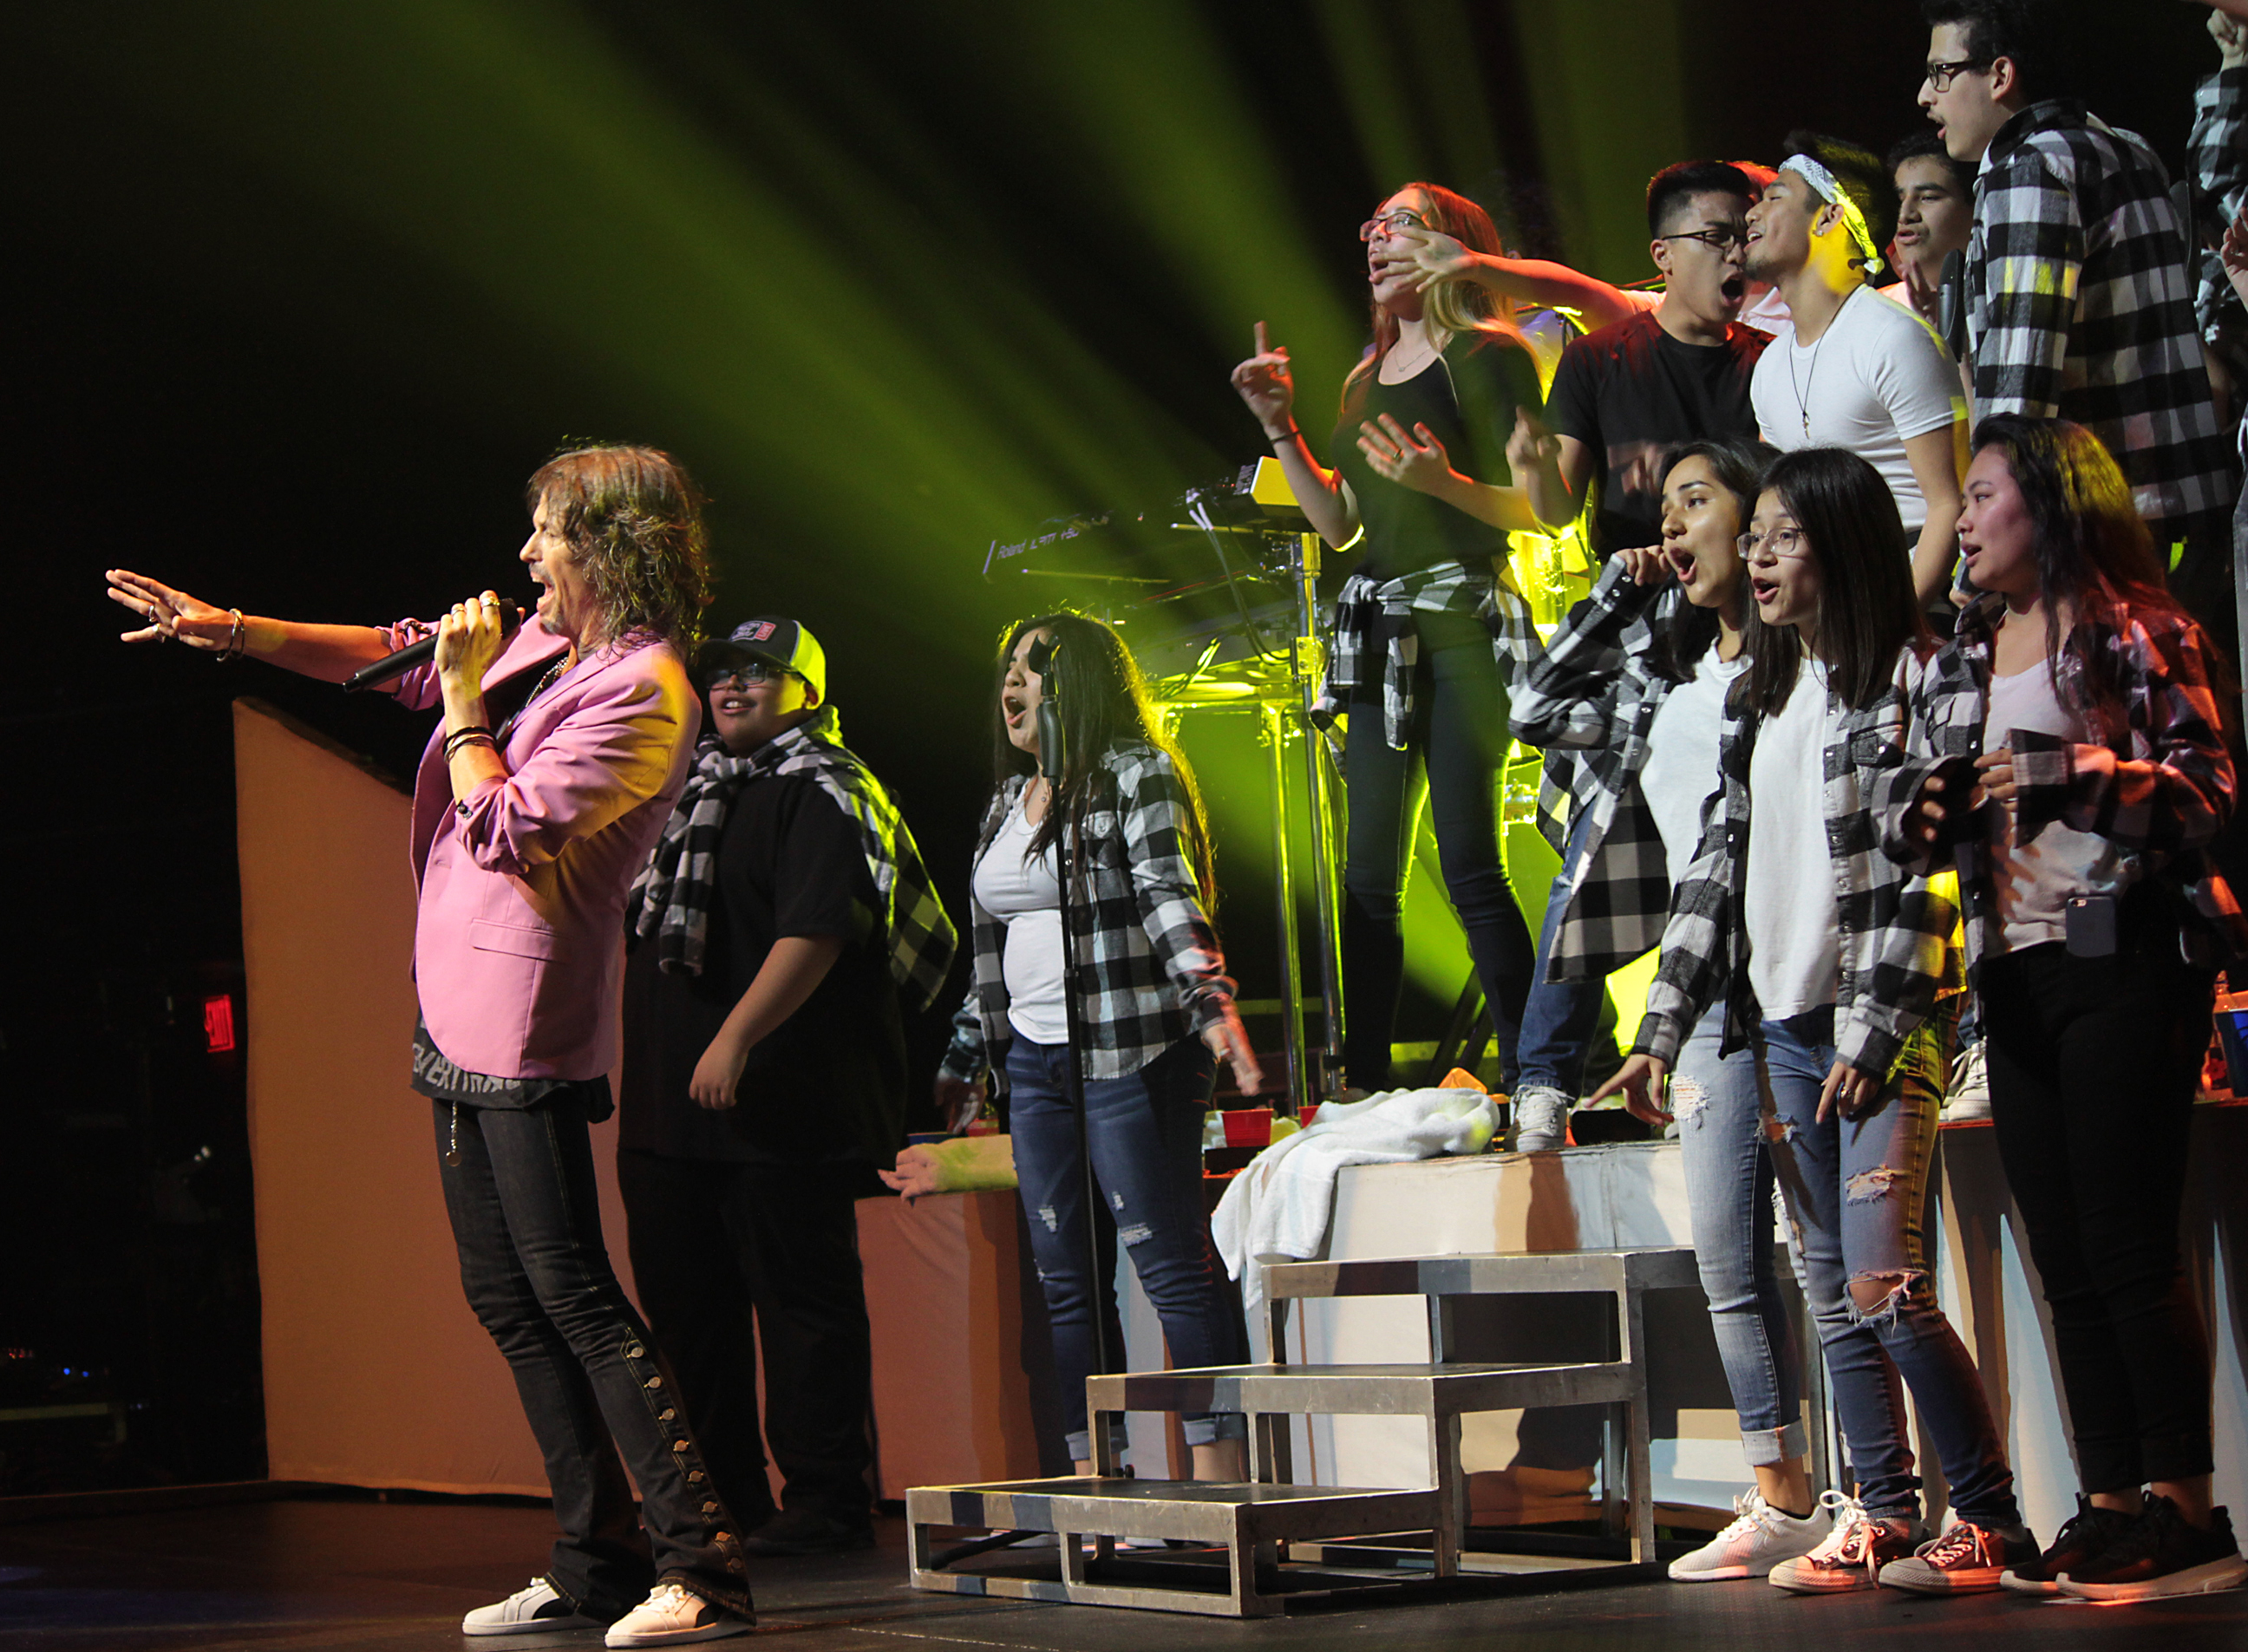 Connally High School choir members performed with the band Foreigner at ACL Live Feb. 25, 2018 (PfISD Photo)